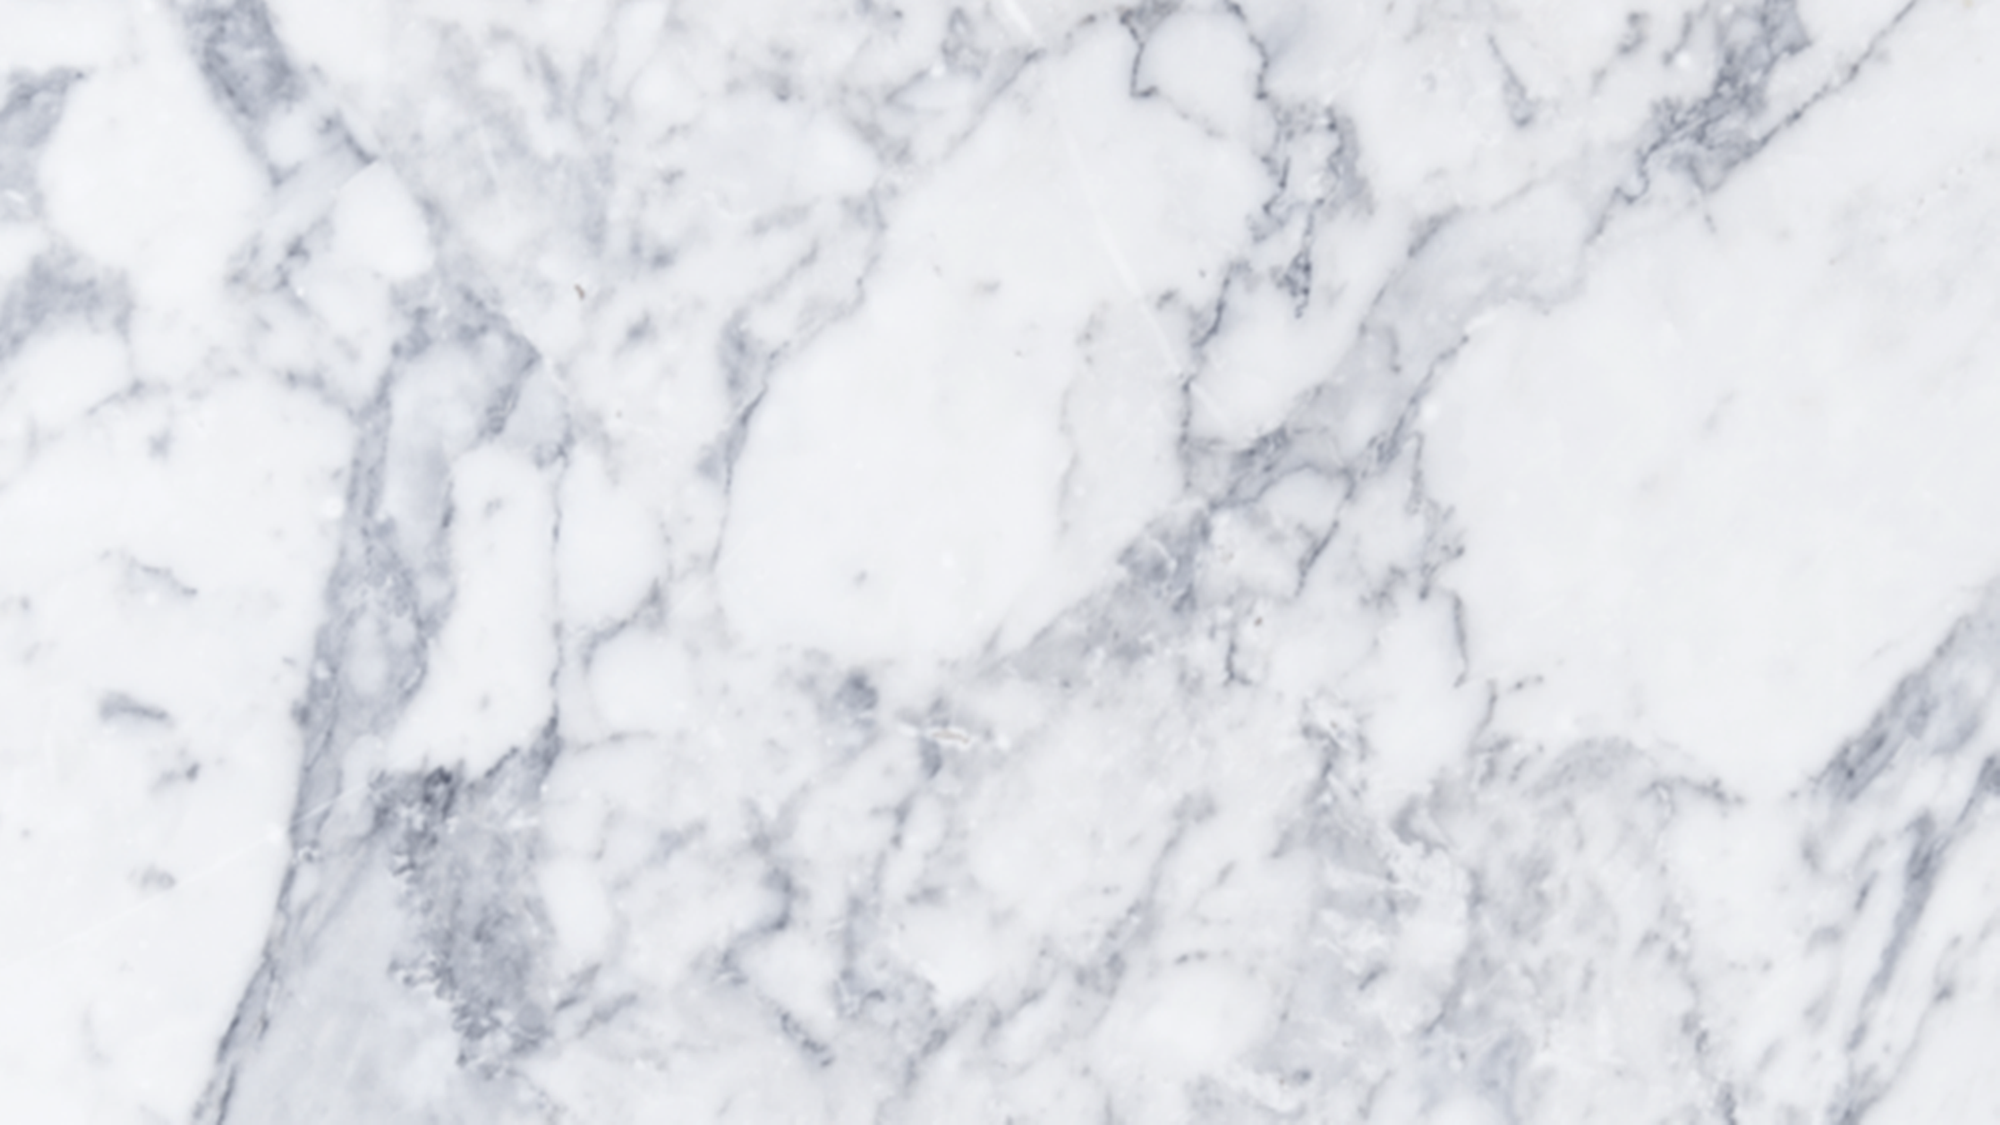 Simple Wallpaper Marble Mac - b830d74da2ba788593943097aec0868e  Snapshot_854584.png